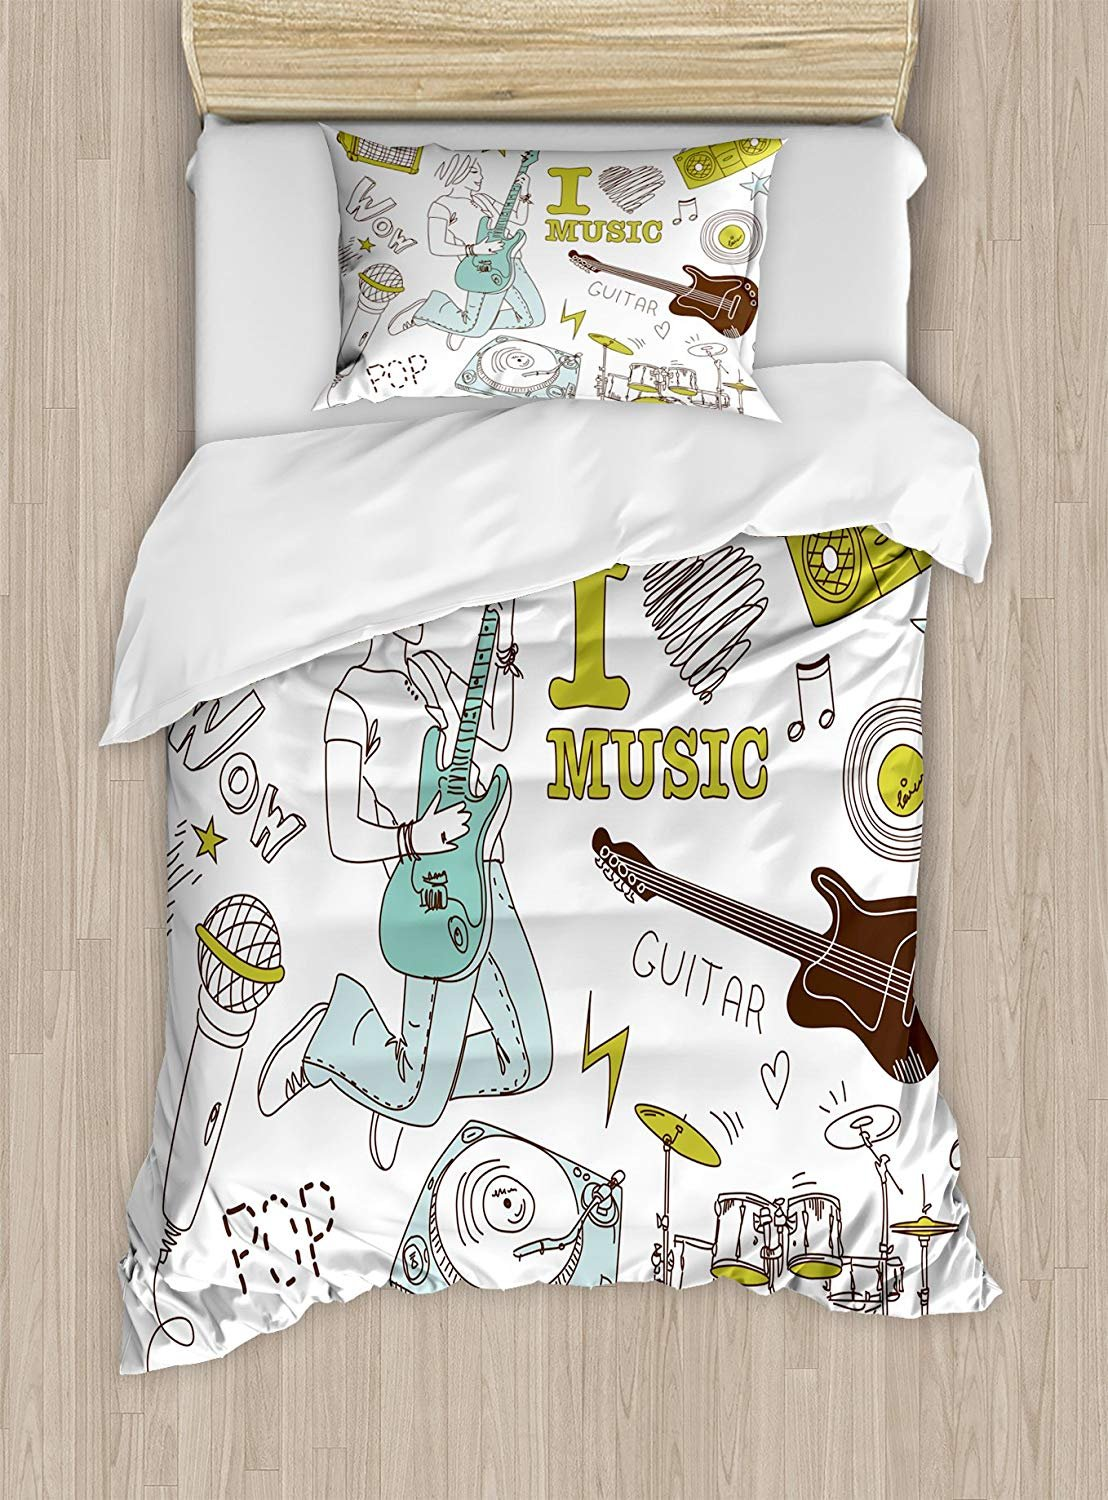 Twin XL Extra Long Bedding Set,Popstar Party Duvet Cover Set,I Love Music Themed Sketch Composition Instruments Musician Girl,Cosy House Collection 4 Piece Bedding Setss